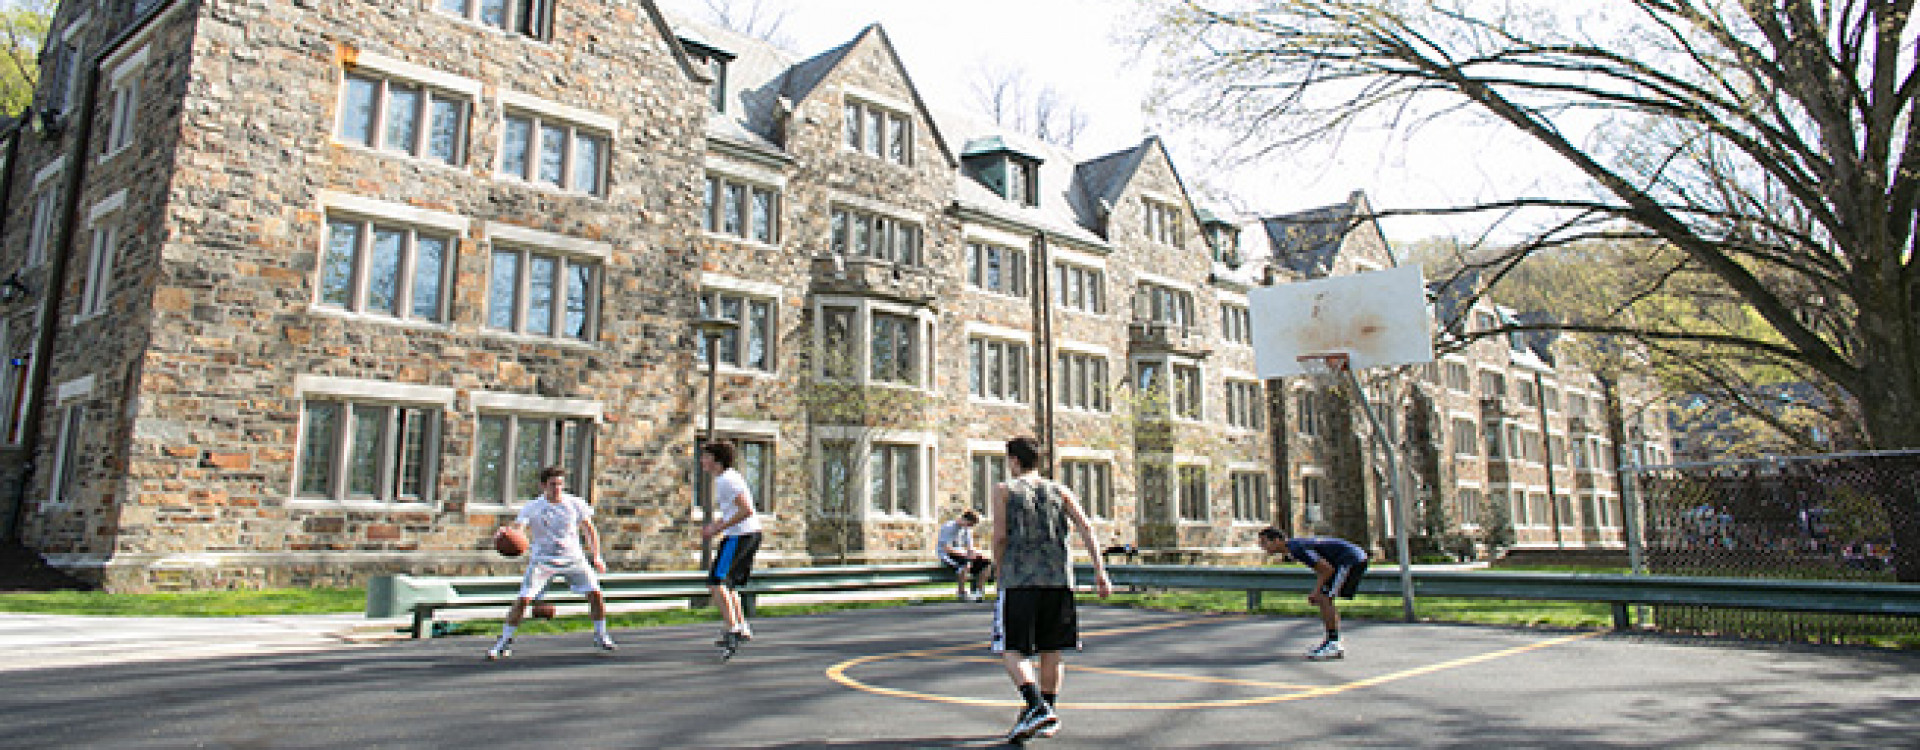 Lehigh Residence Hall and students playing basketball